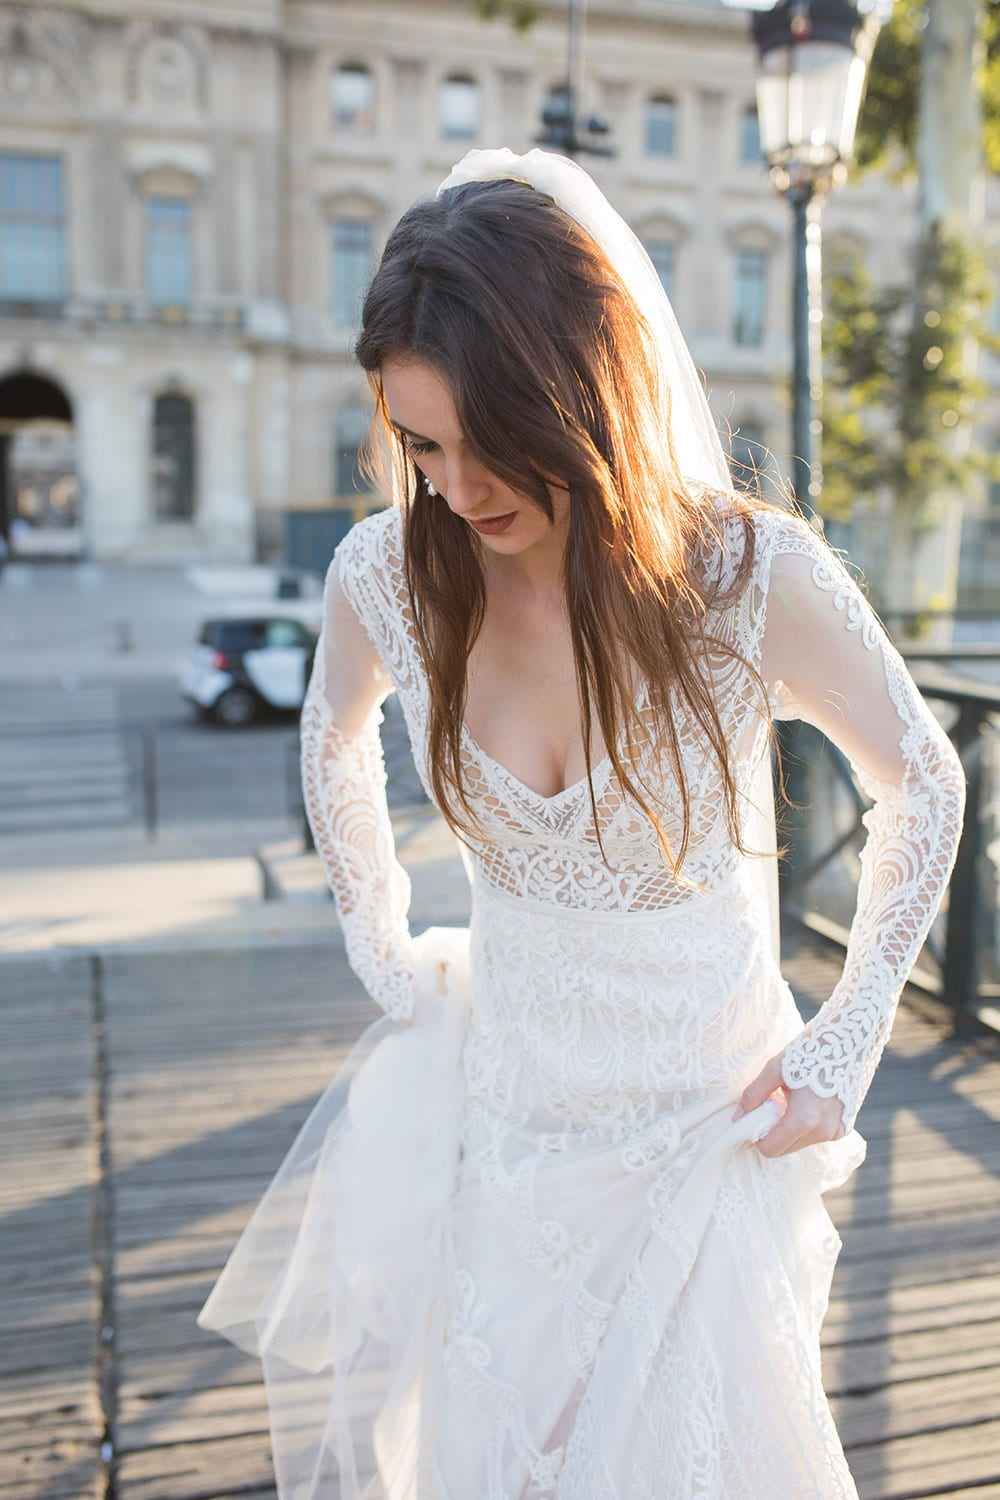 Model wearing Vinka Design Briar Wedding Dress, an Embroidered Lace Wedding Gown in Paris close up showing front detail